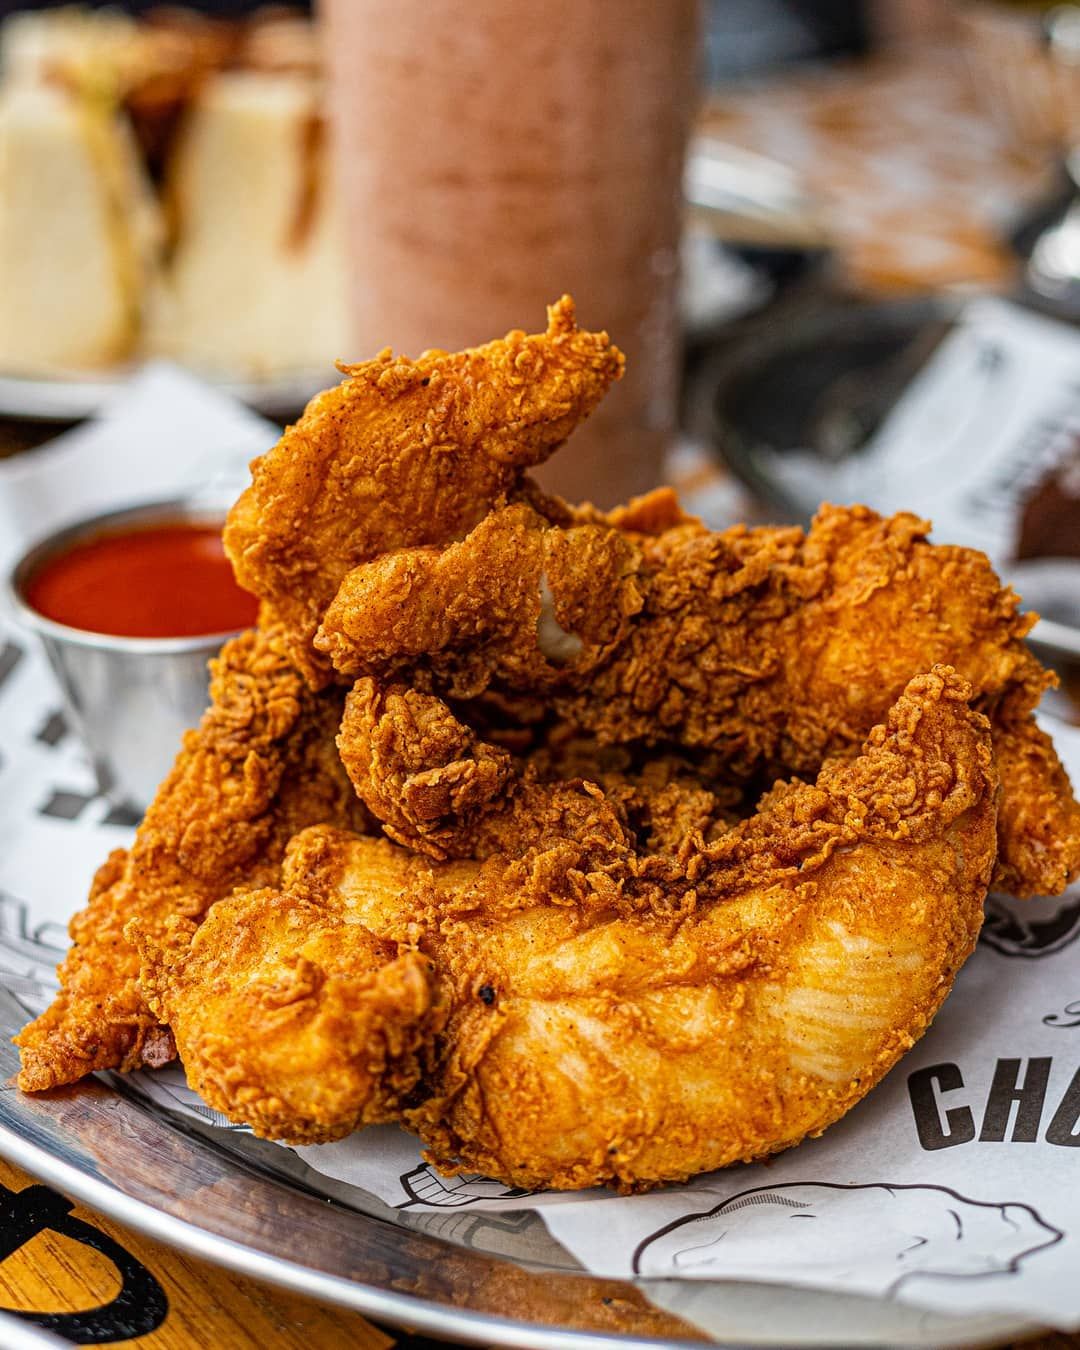 Crispy fried chicken on a silver platter with a tub of red sauce in the background.